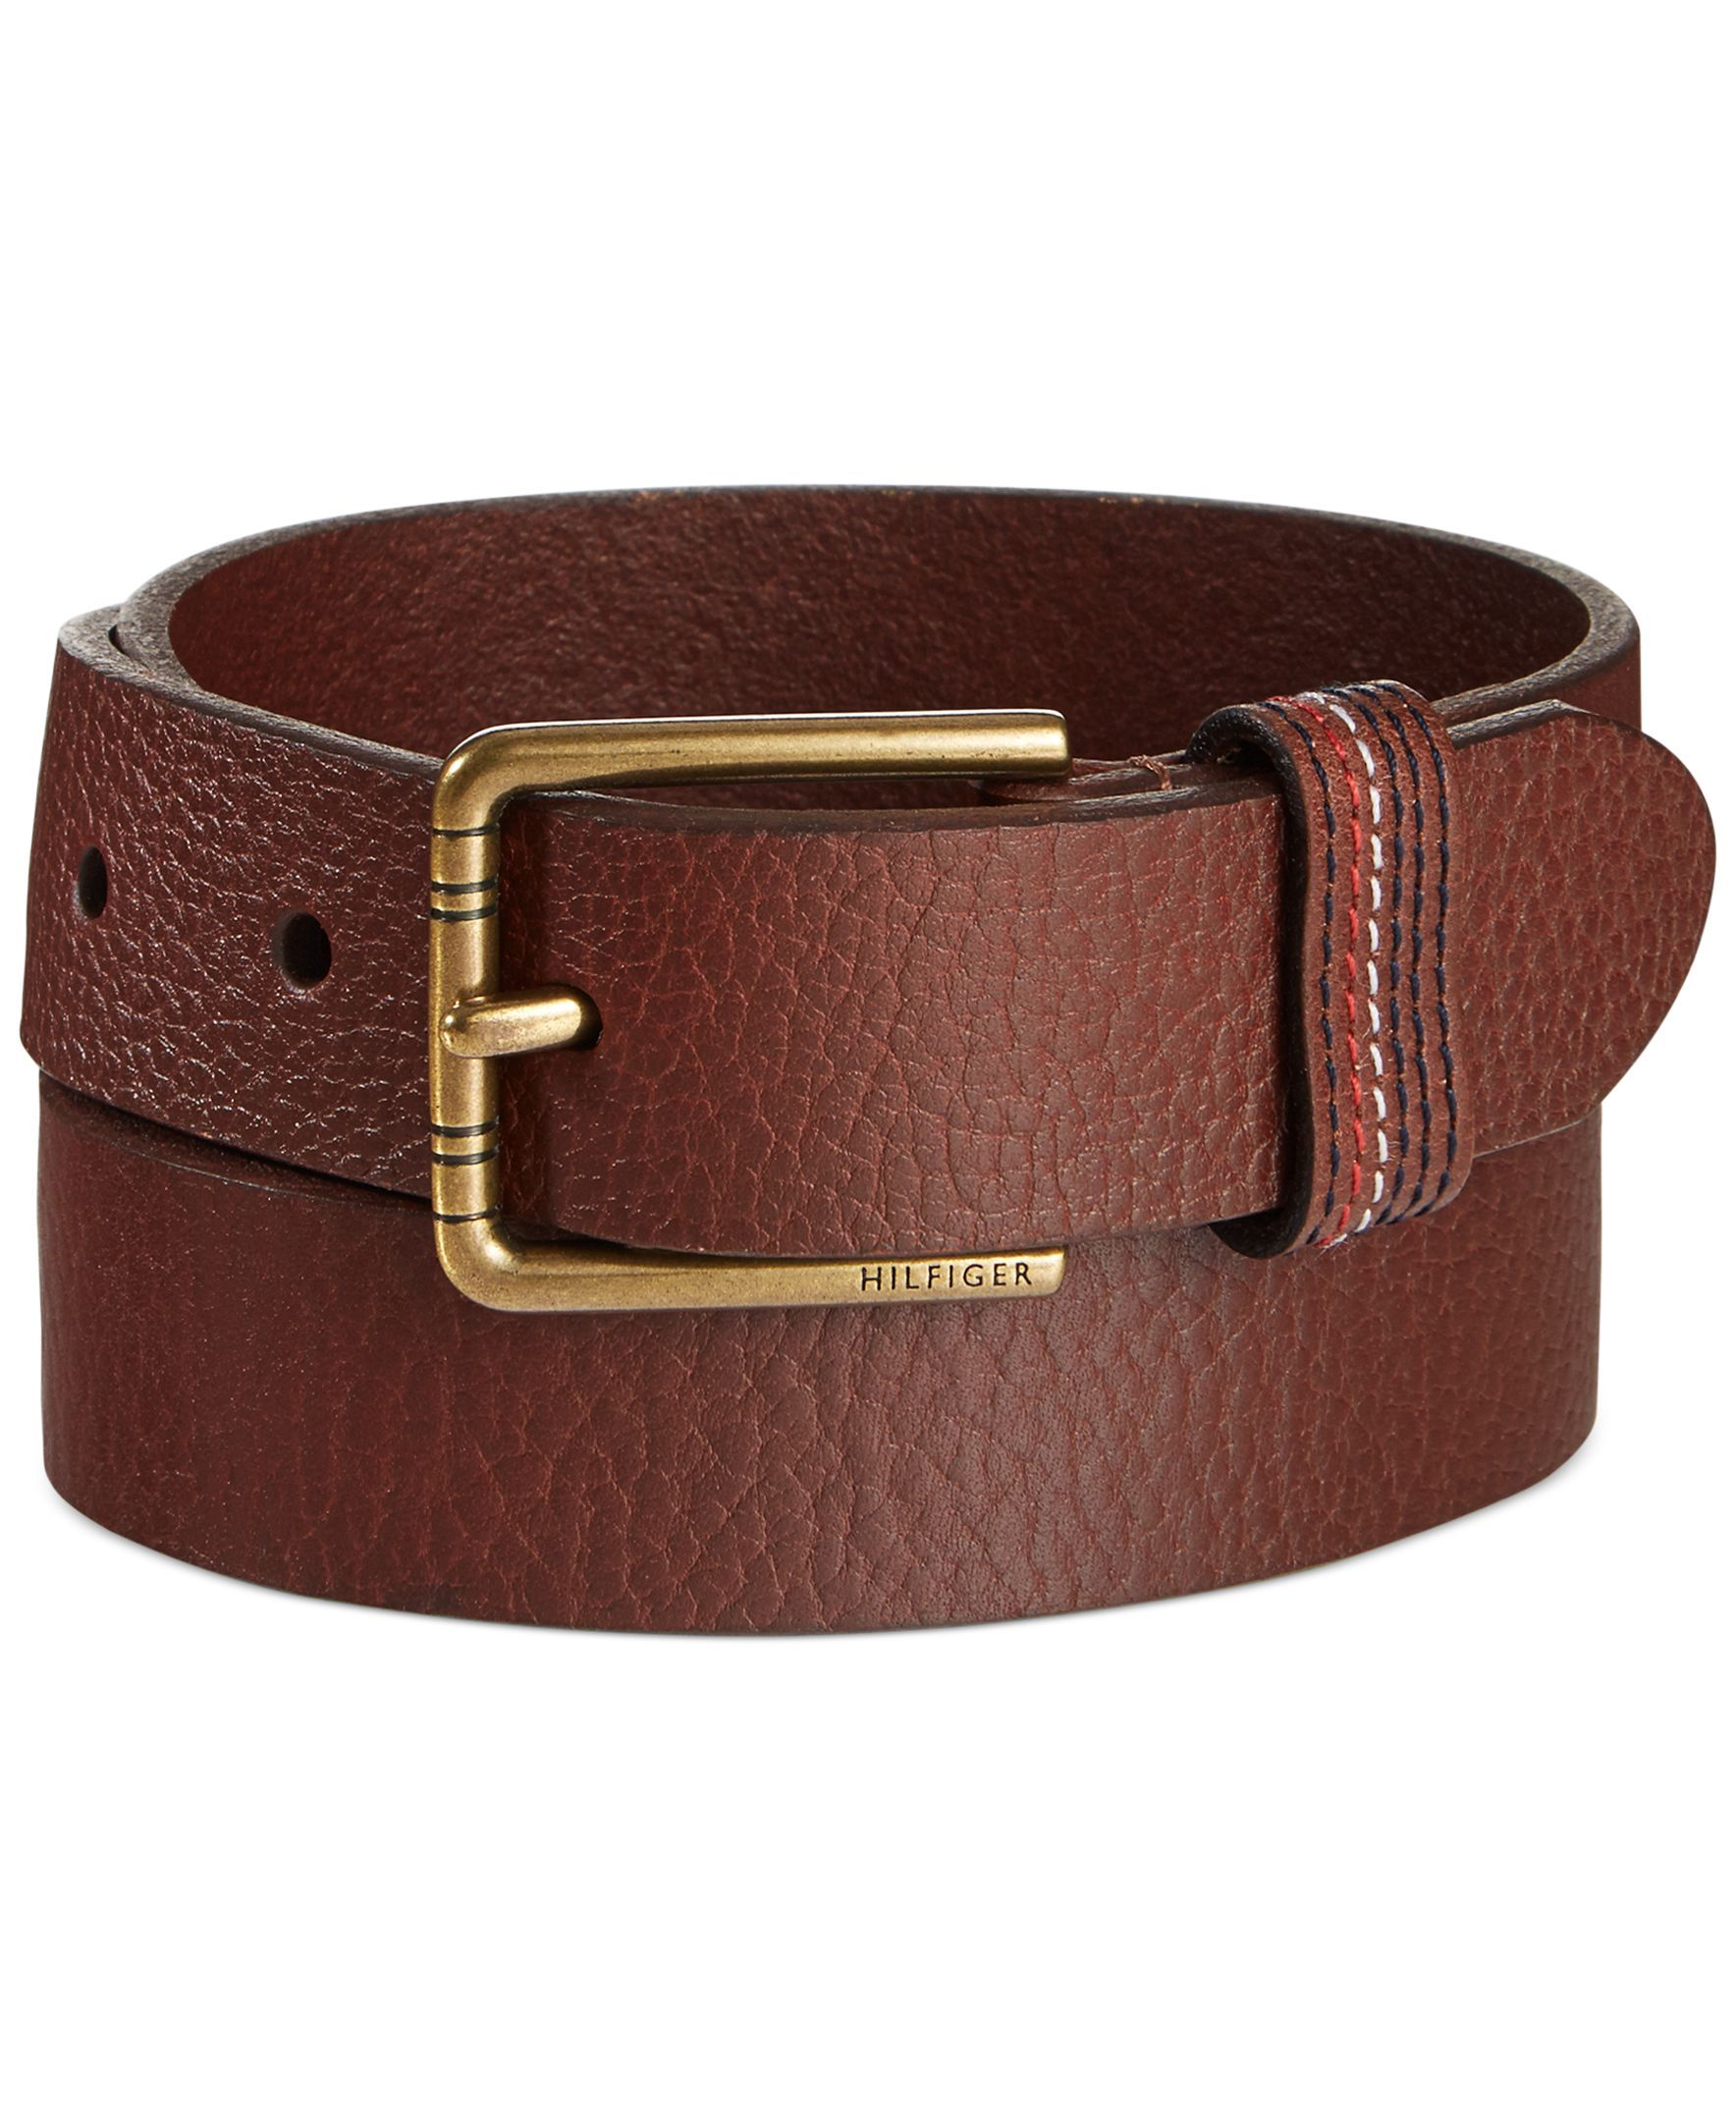 20d60b107e63 This belt from Tommy Hilfiger has a textured finish and contrast stitching  at its loop keeper.